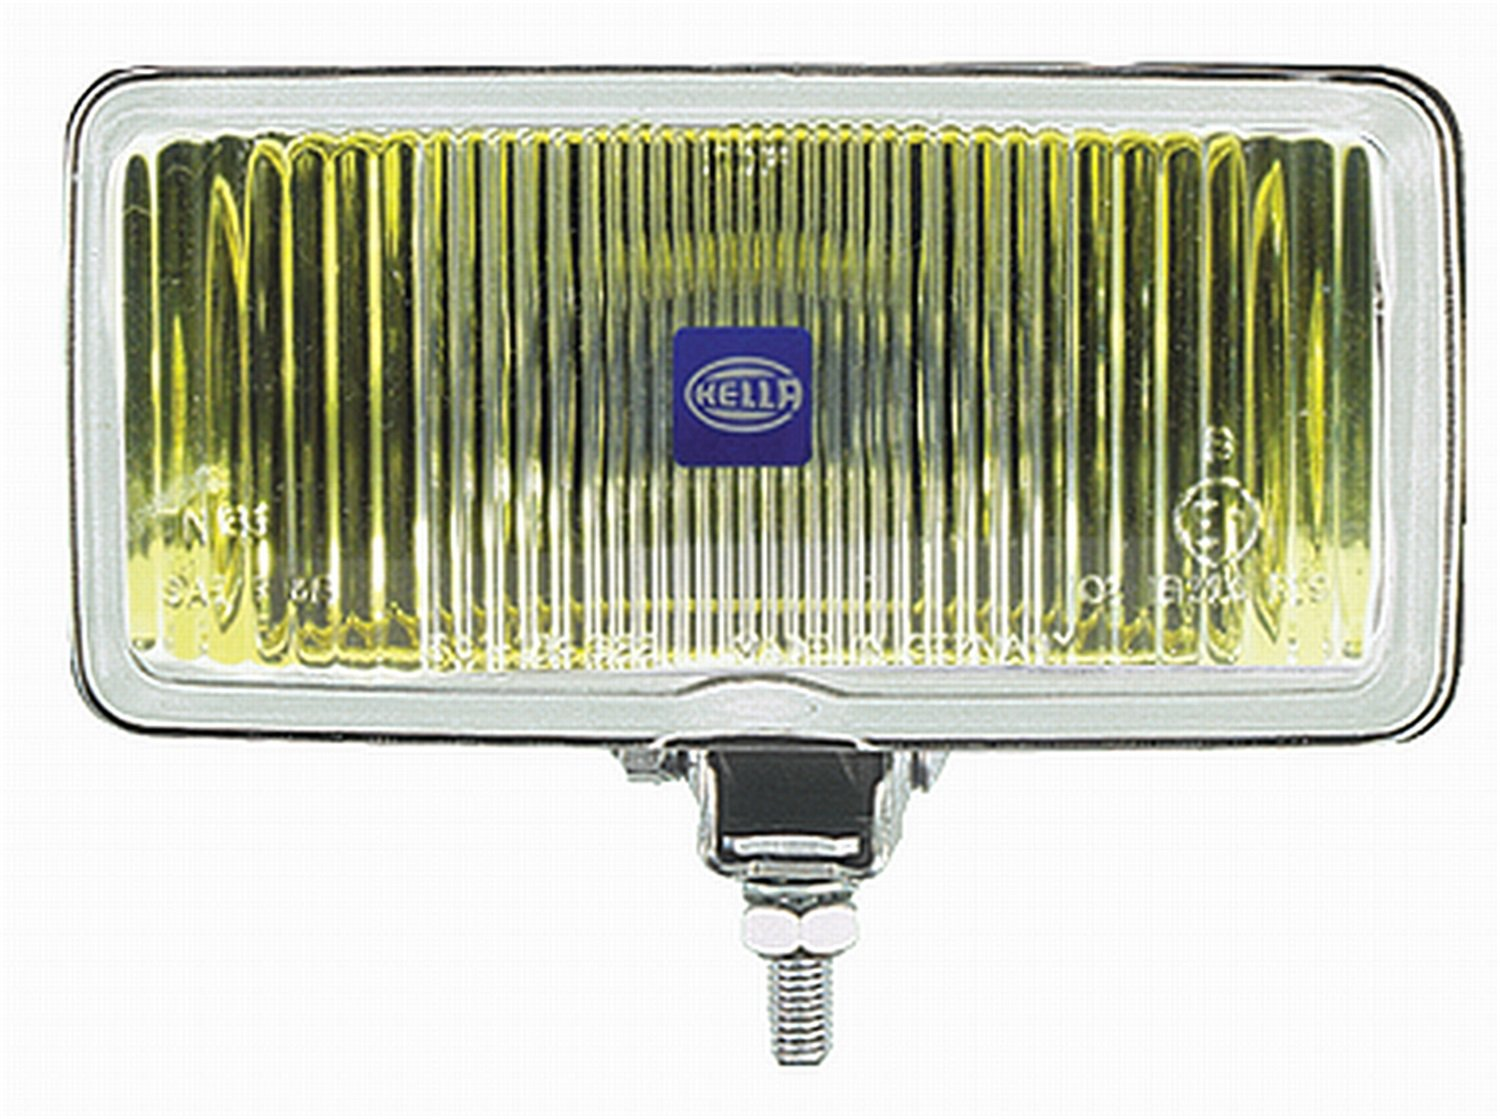 HELLA 005700021 550 Series 55 Watt 12-36 Heavy Duty H3 Type Amber Halogen Fog Lamp by HELLA